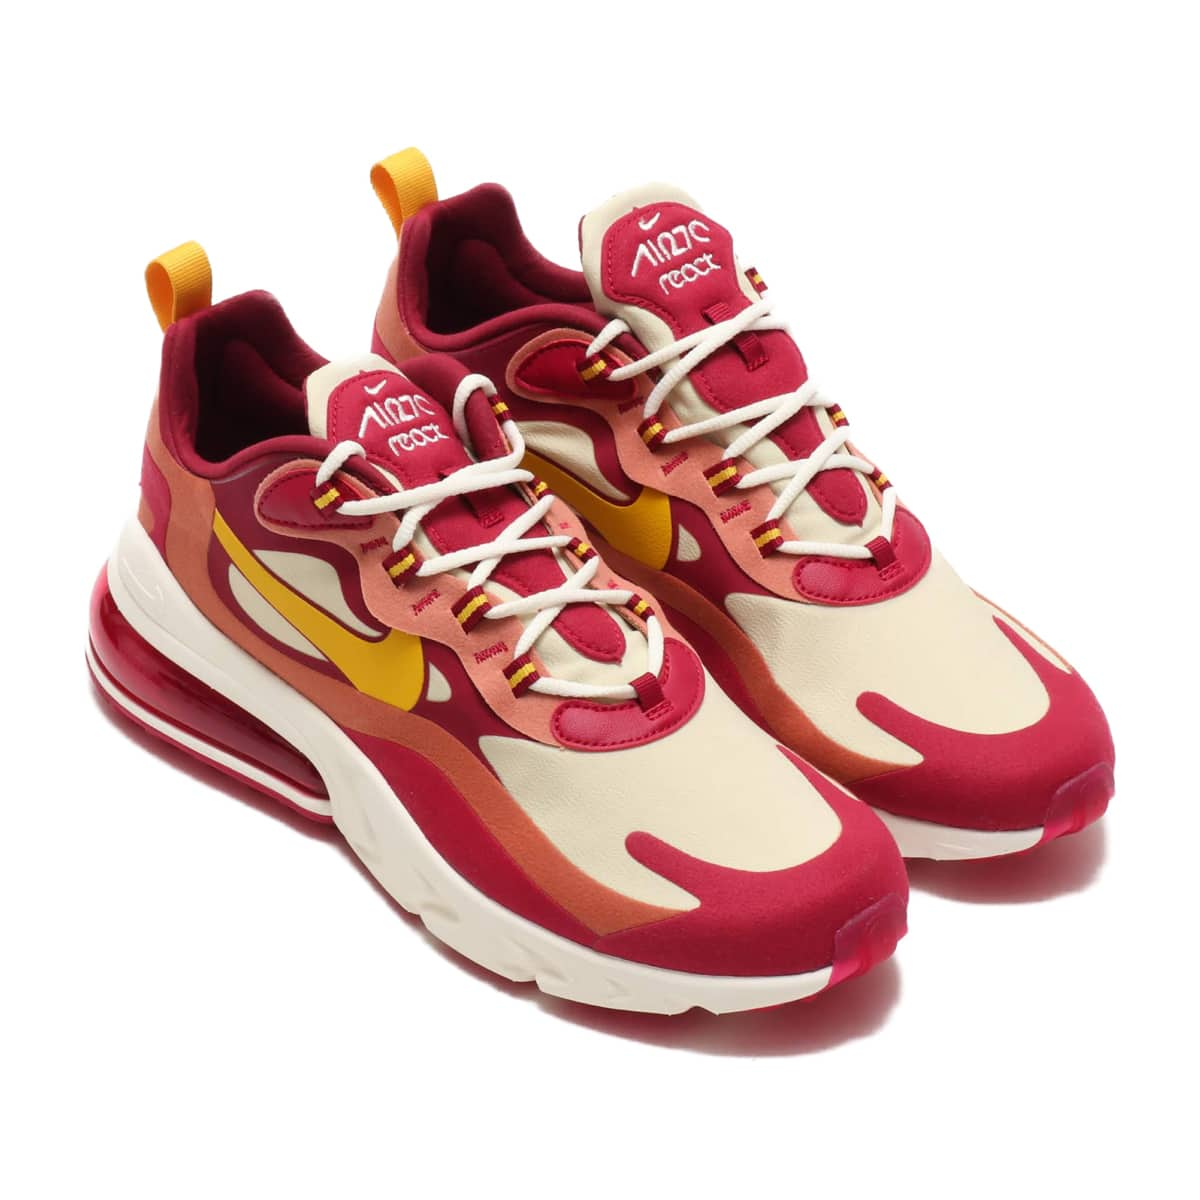 NIKE AIR MAX 270 REACT NOBLE RED/DARK SULFUR-TEAM GOLD 19HO-I_photo_large